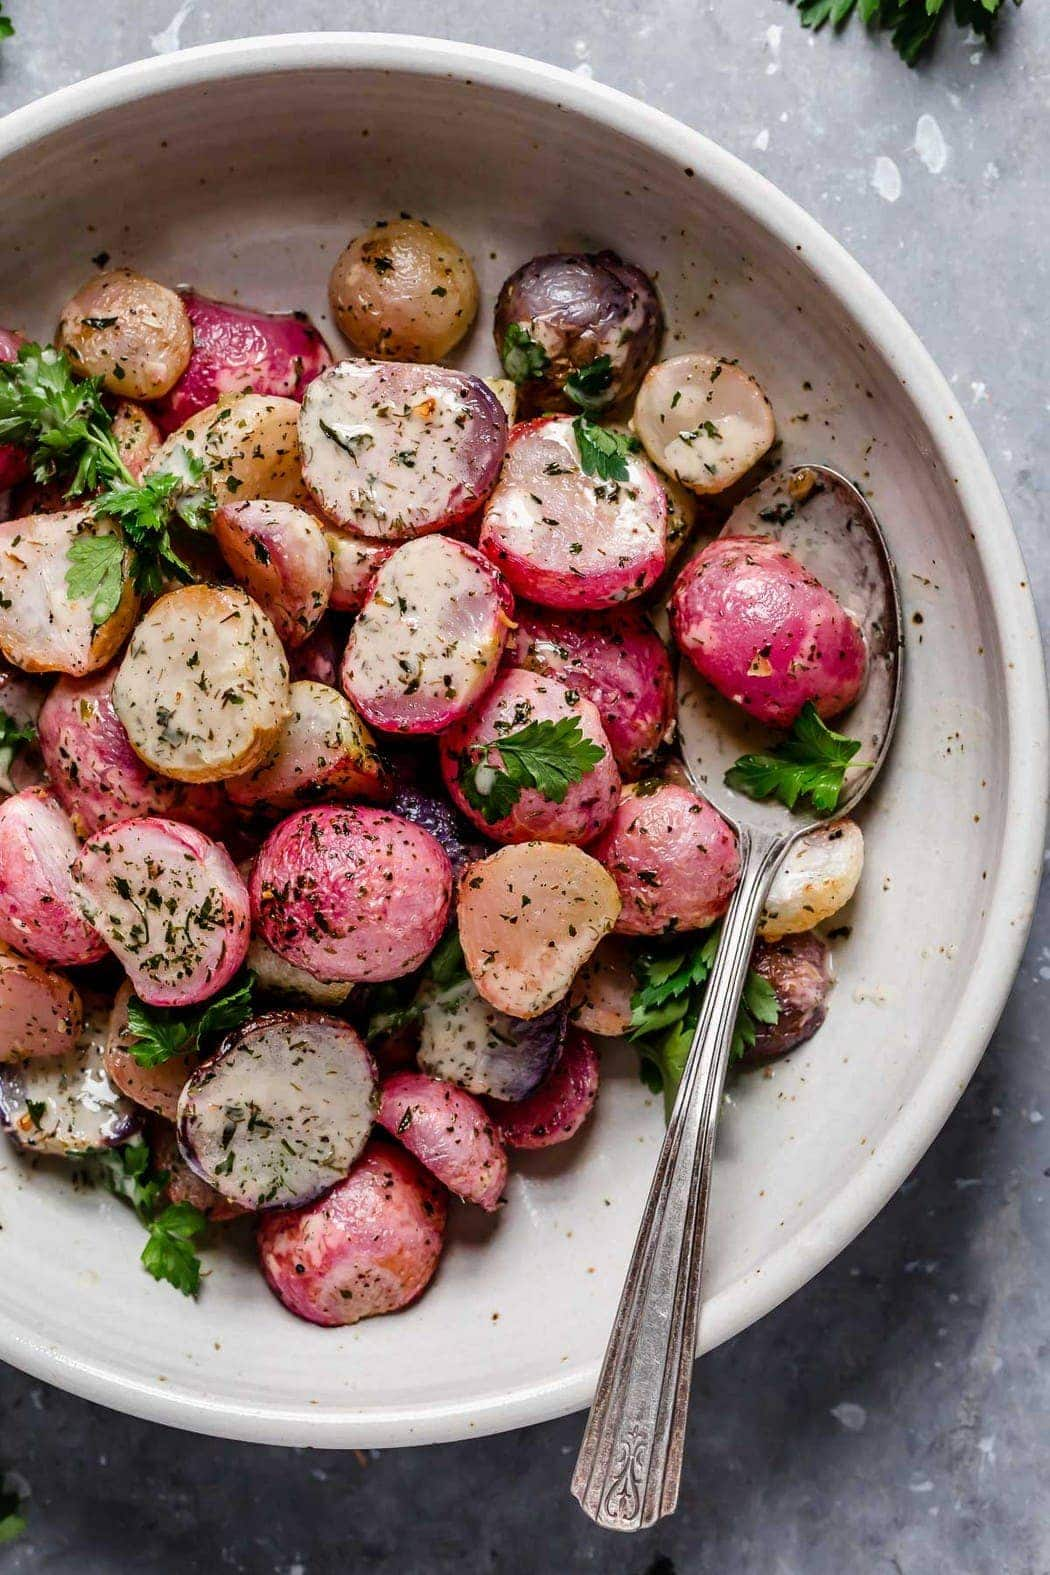 Photo of Garlic Roasted Radishes in a serving bowl.